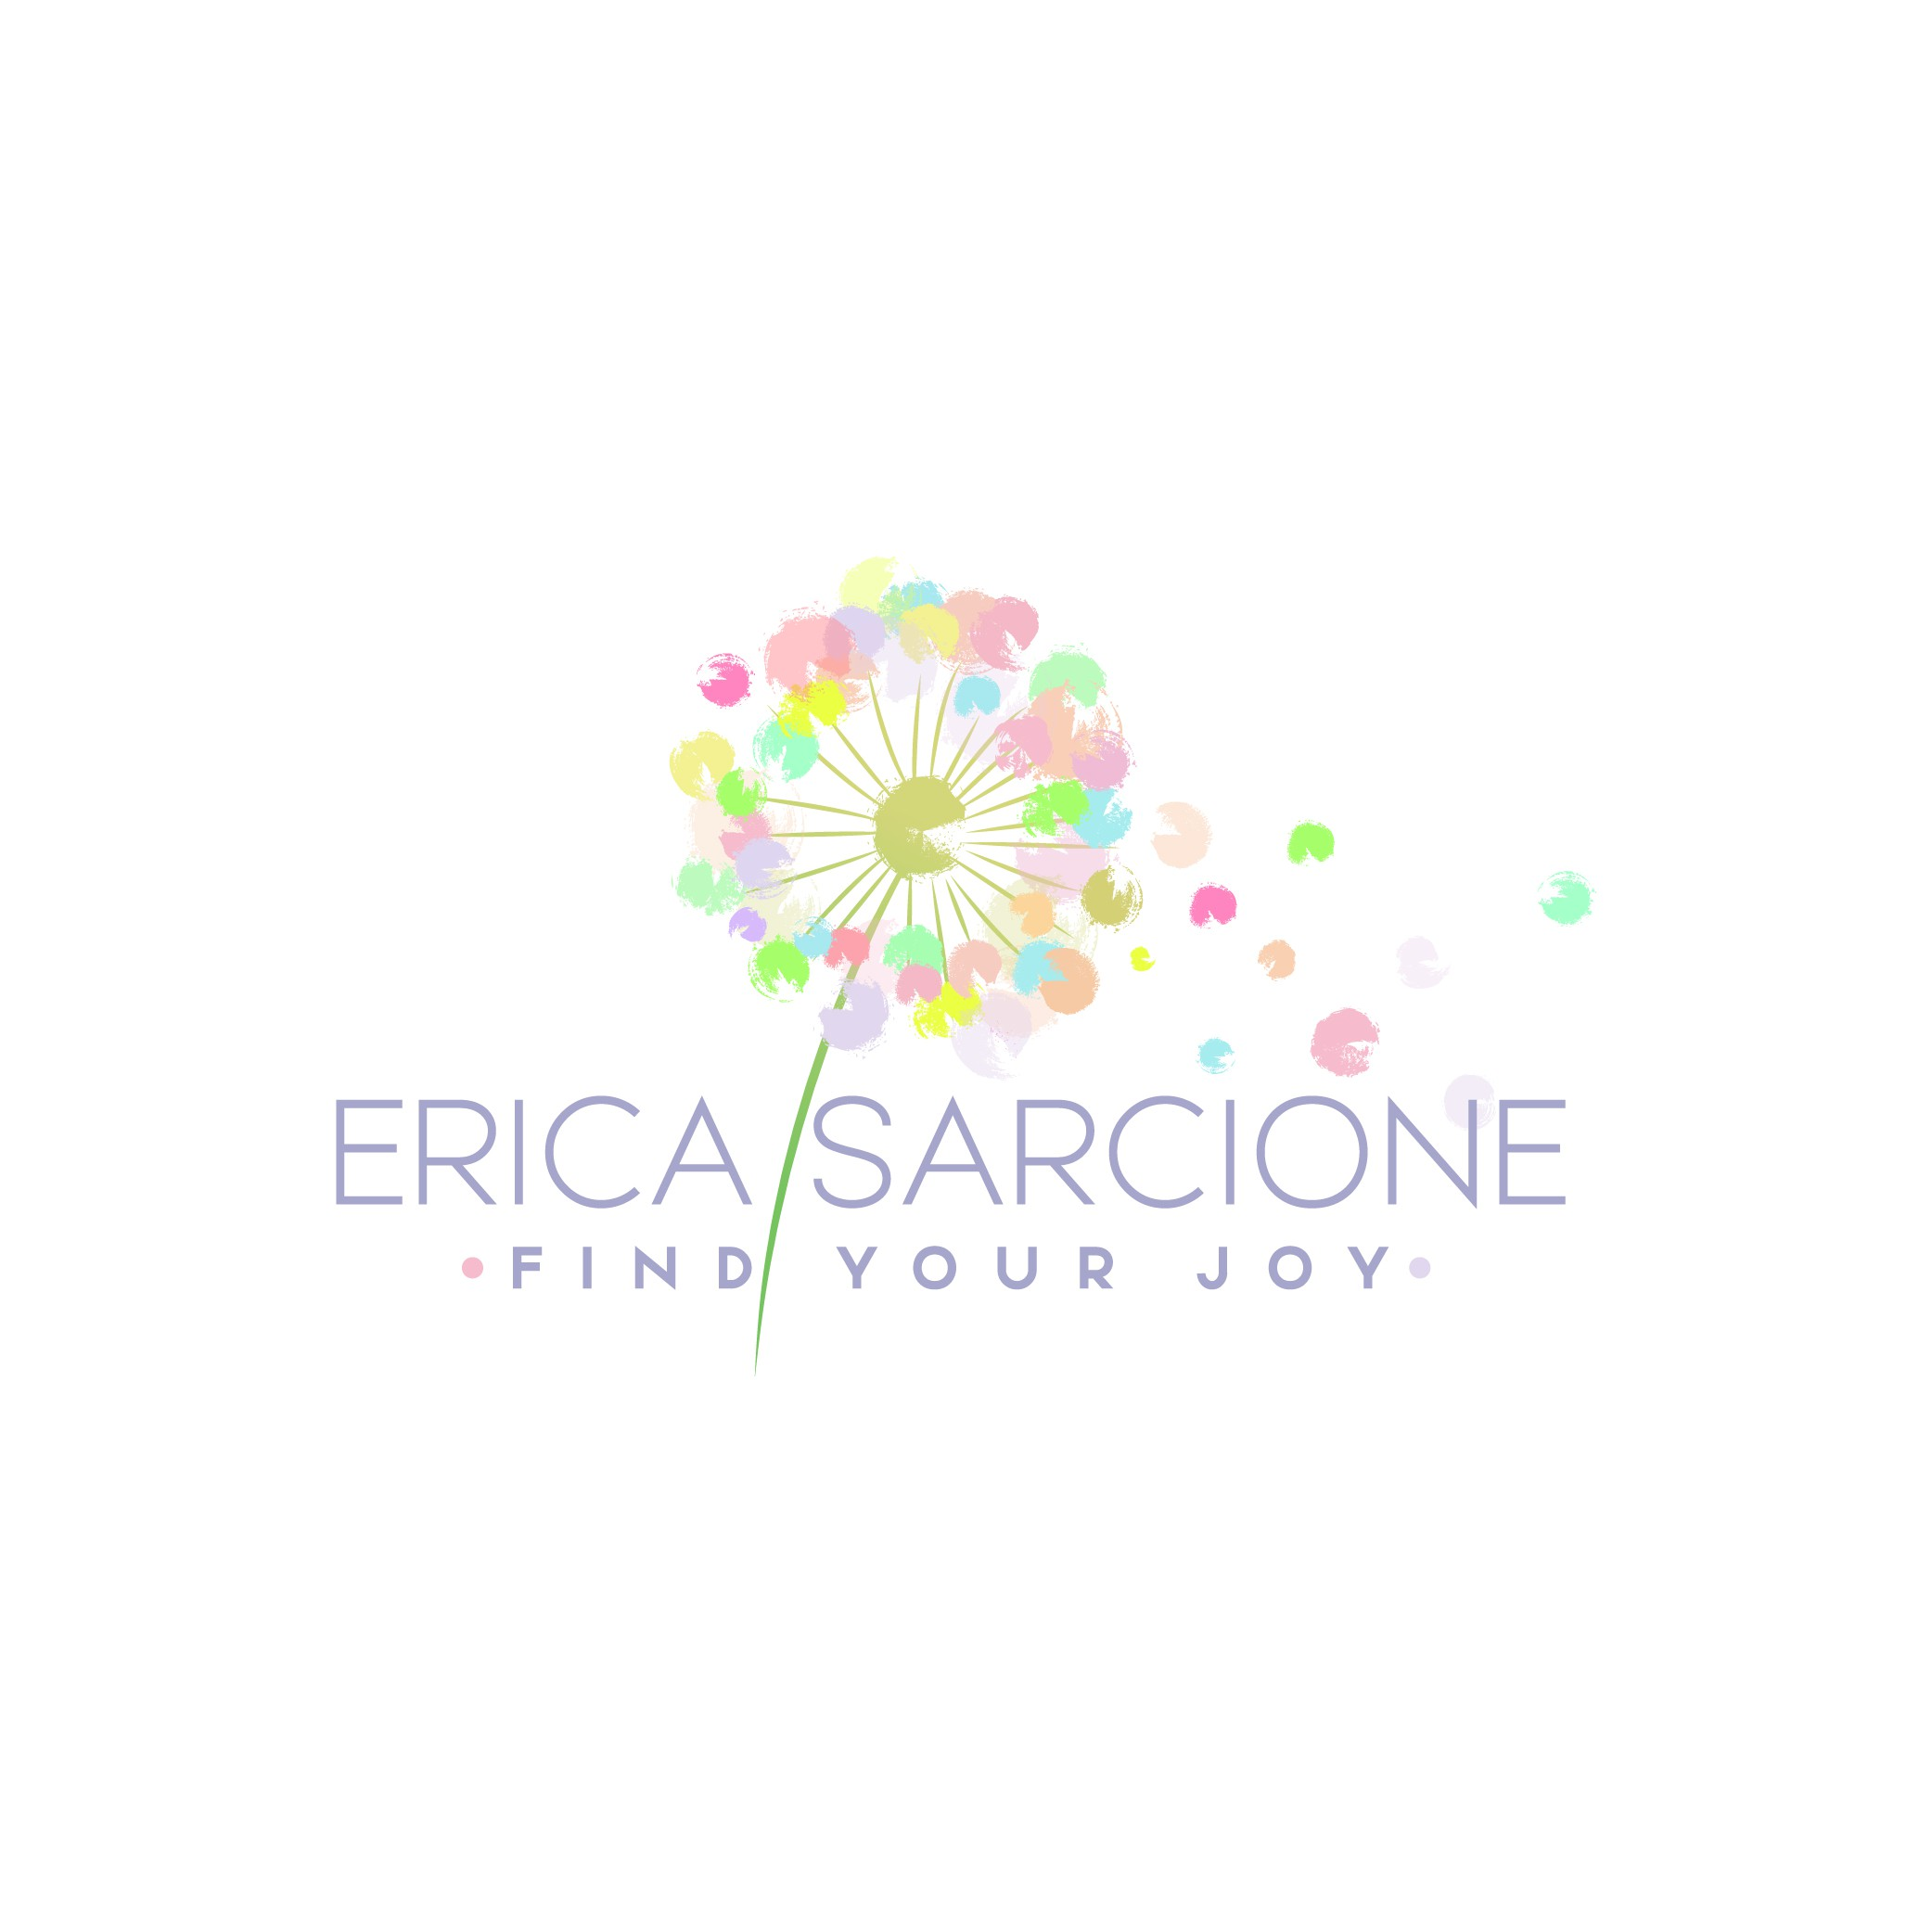 Starting a health and wellness coaching business. Super excited to help others FIND THEIR JOY !